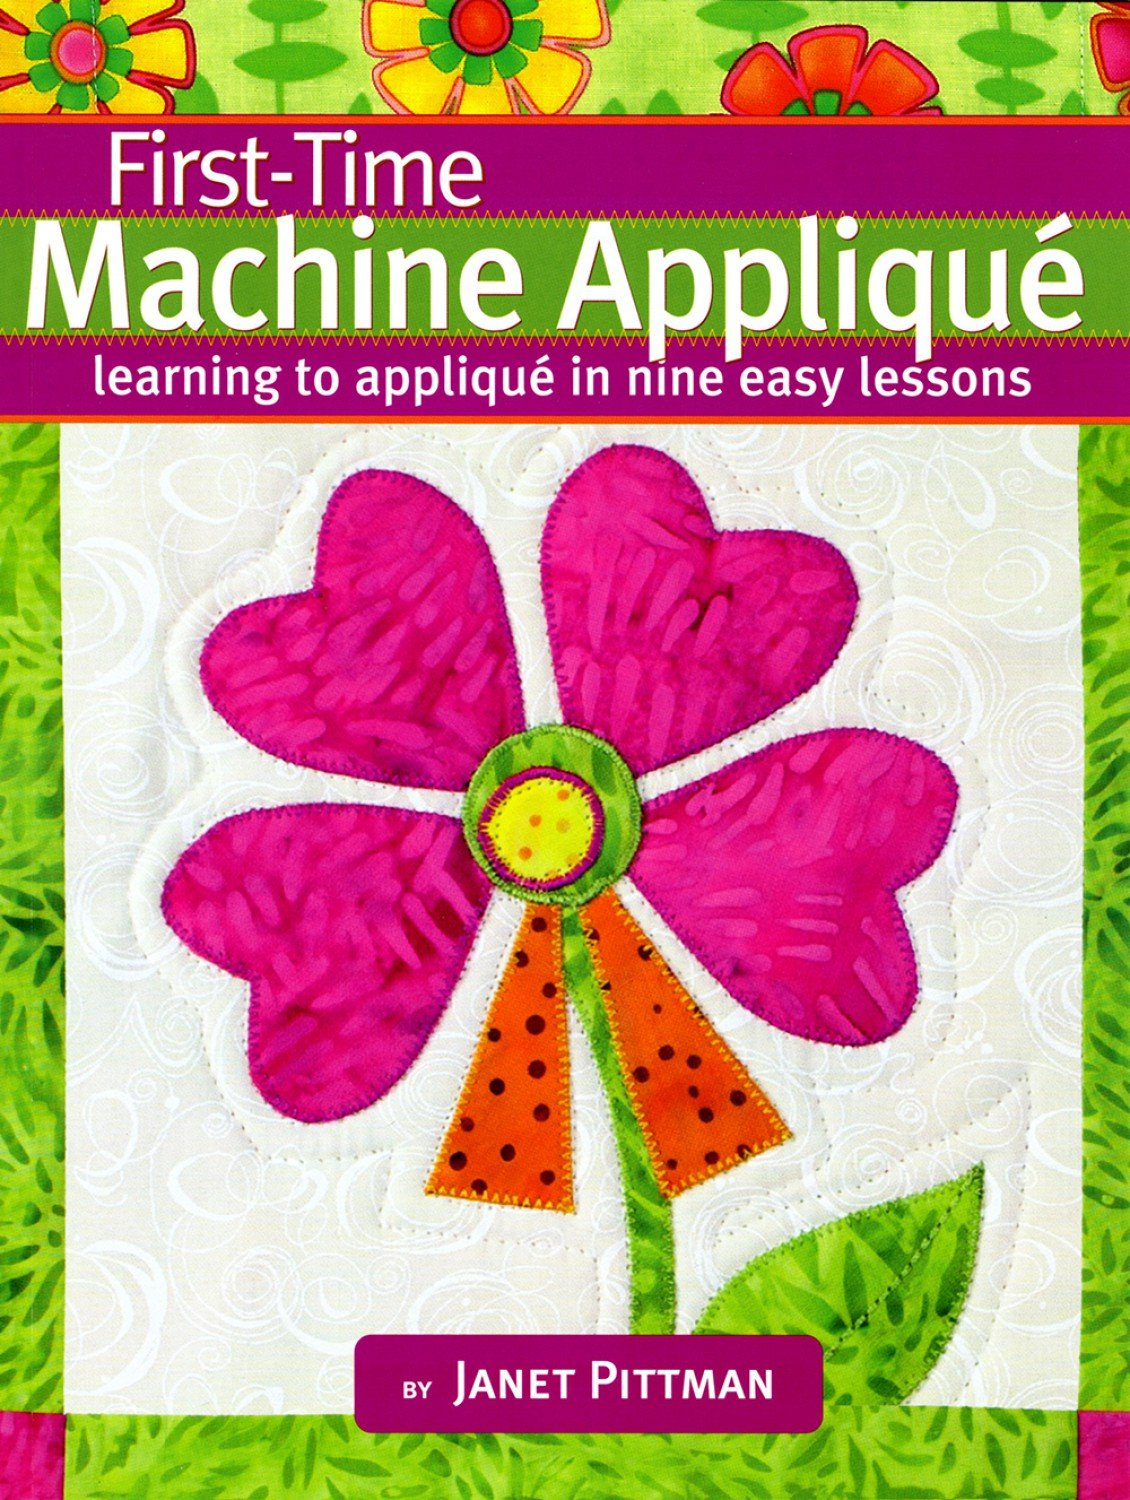 First-Time Machine Applique Book